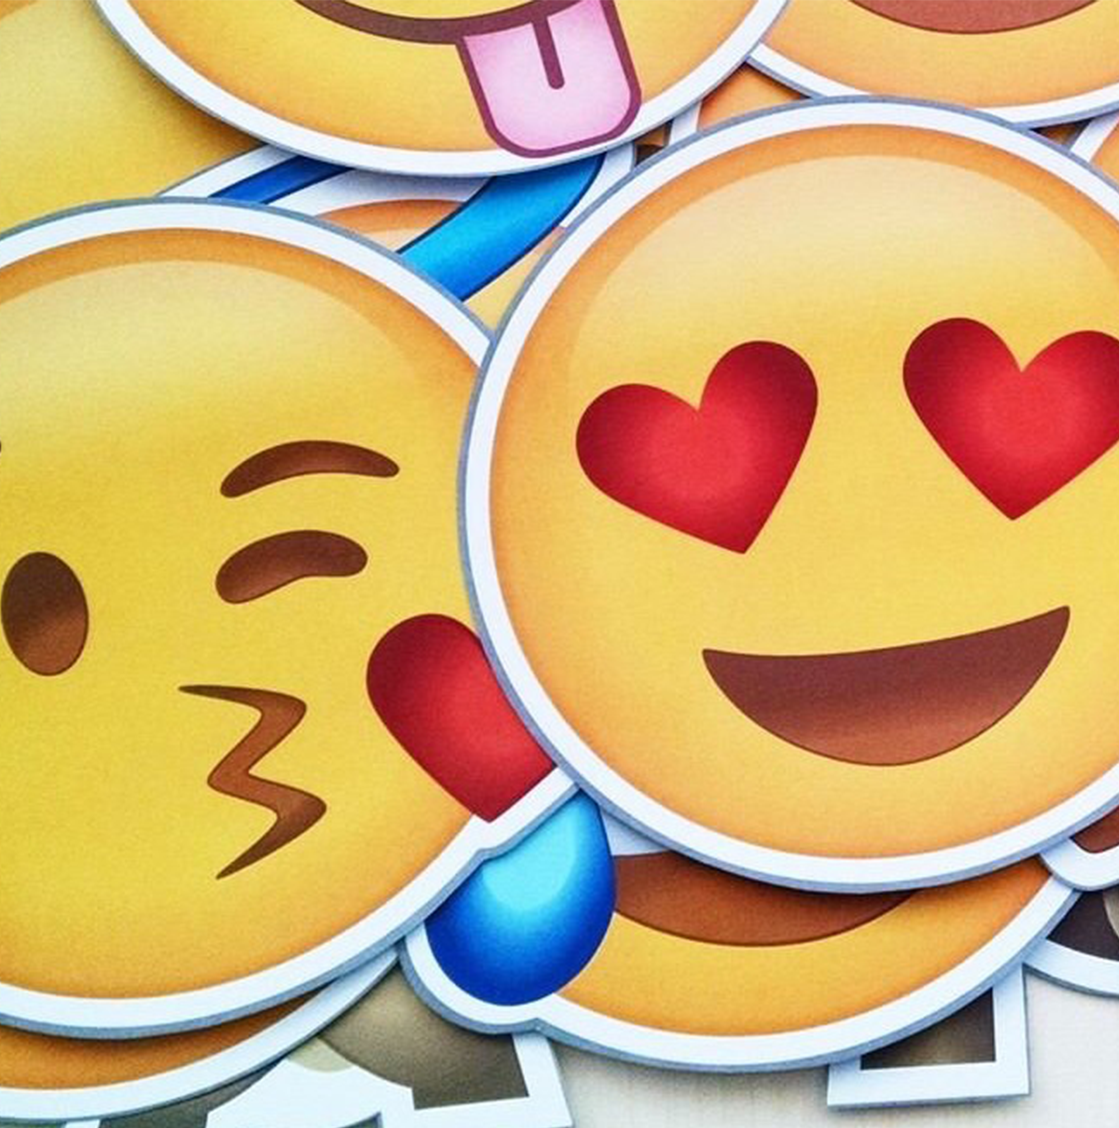 Los emojis revolucionan el Email Marketing